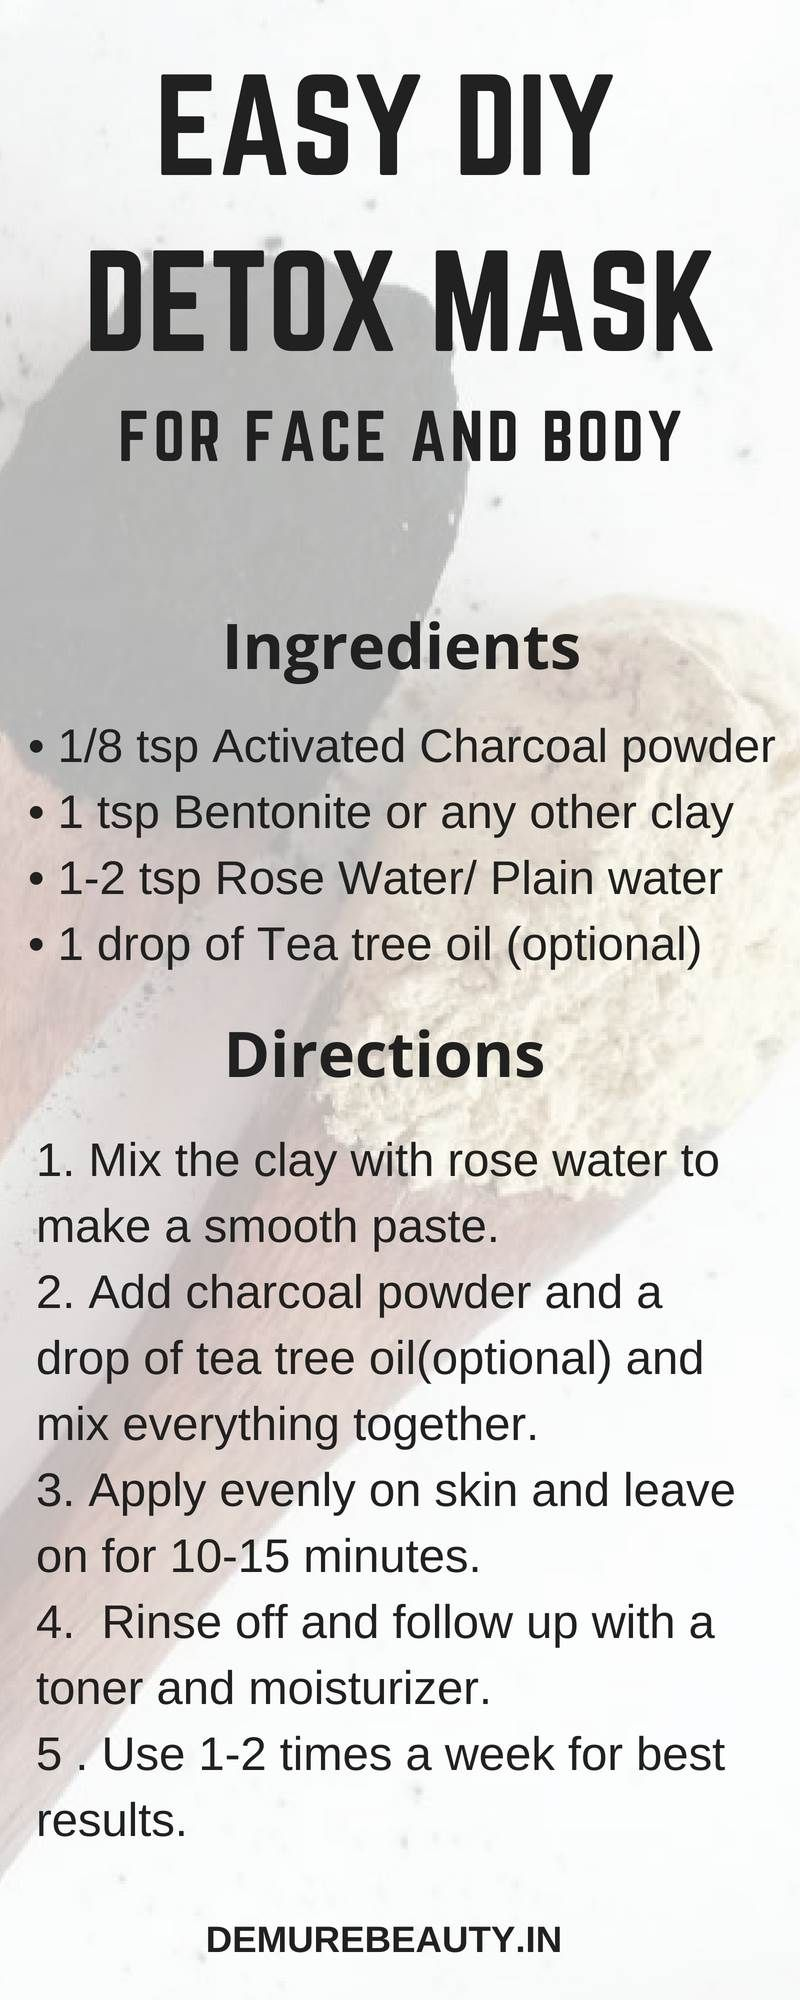 Get Top DIY Face Mask from demurebeauty.in